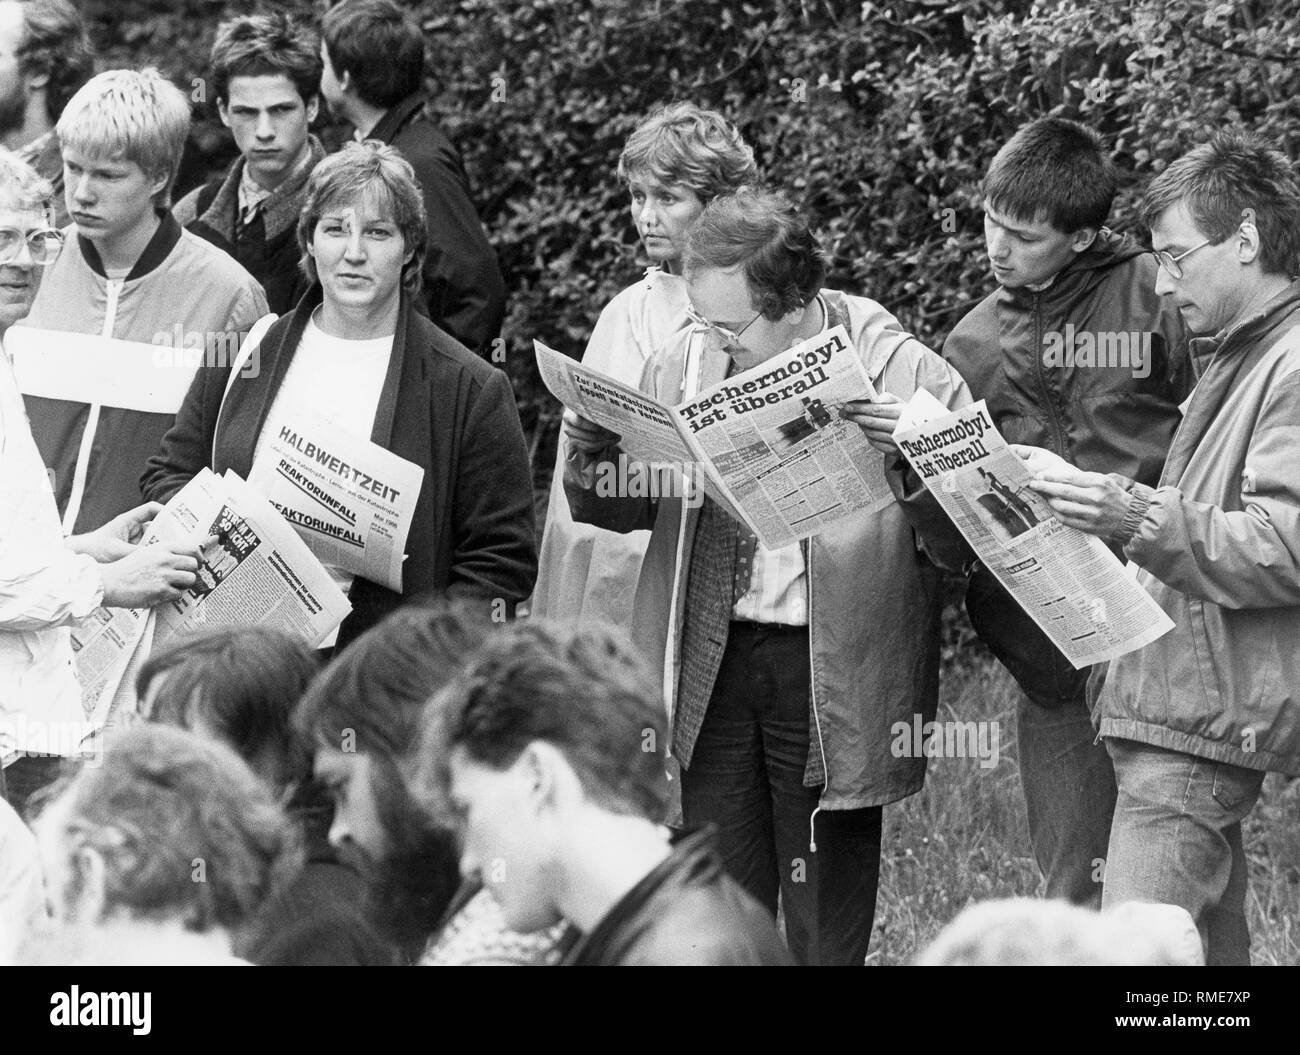 Protesters call for the immediate shutdown of the Hamm-Uentrop nuclear power plant and hold journals bearing the words 'Chernobyl is everywhere' during the blockade of the gates. - Stock Image